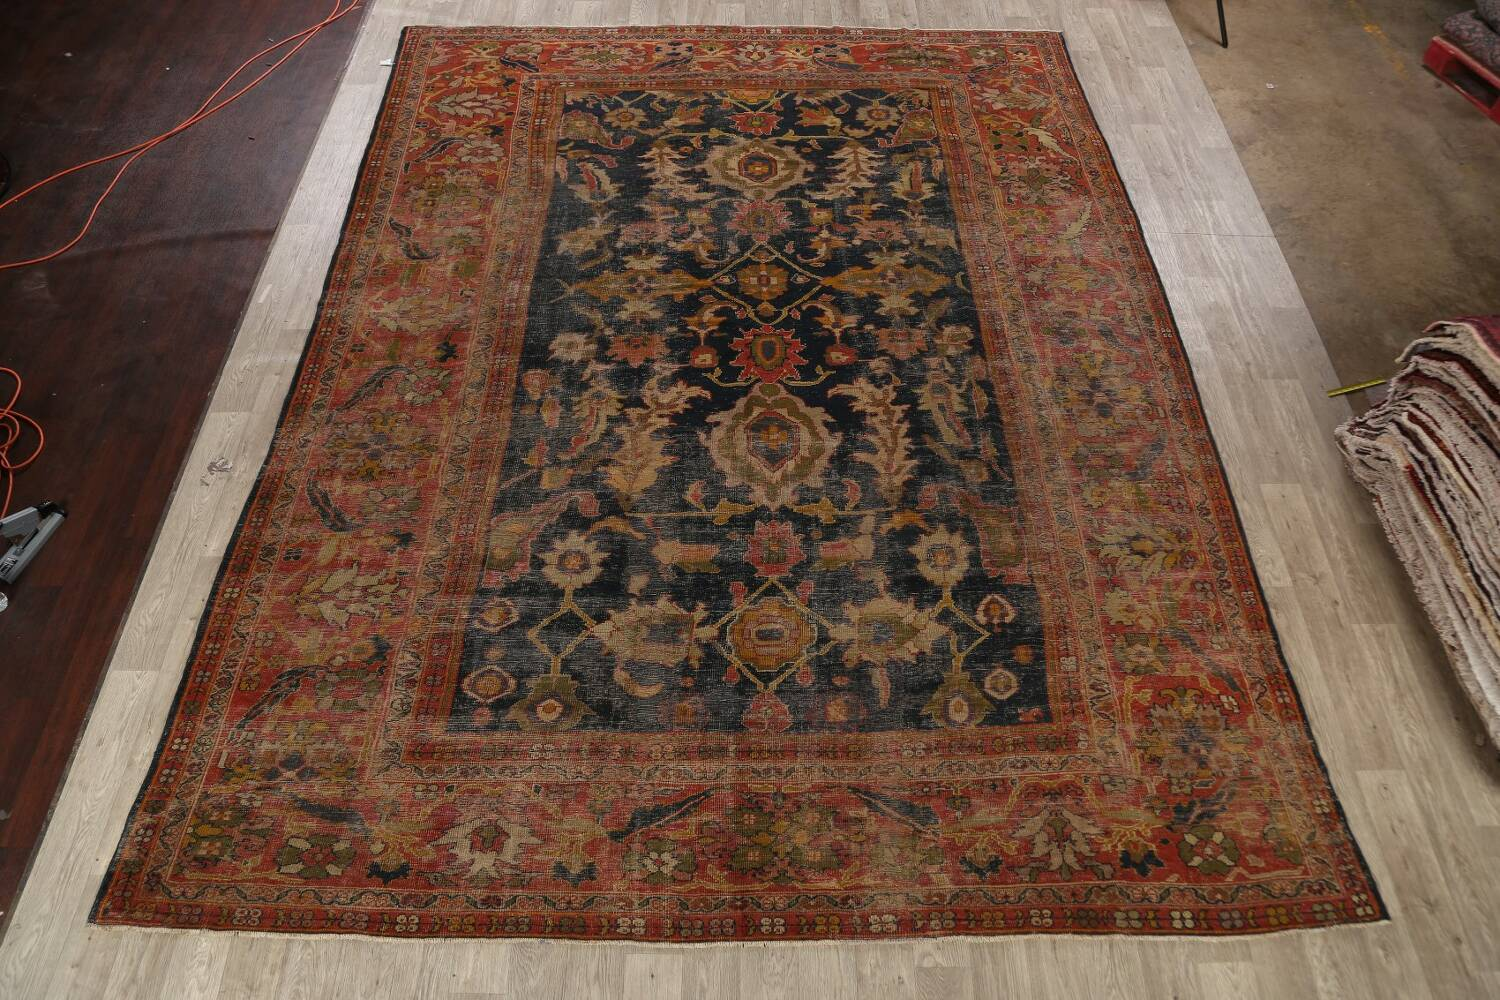 Antique Vegetable Dye Sultanabad Persian Area Rug 11x14 Large image 2